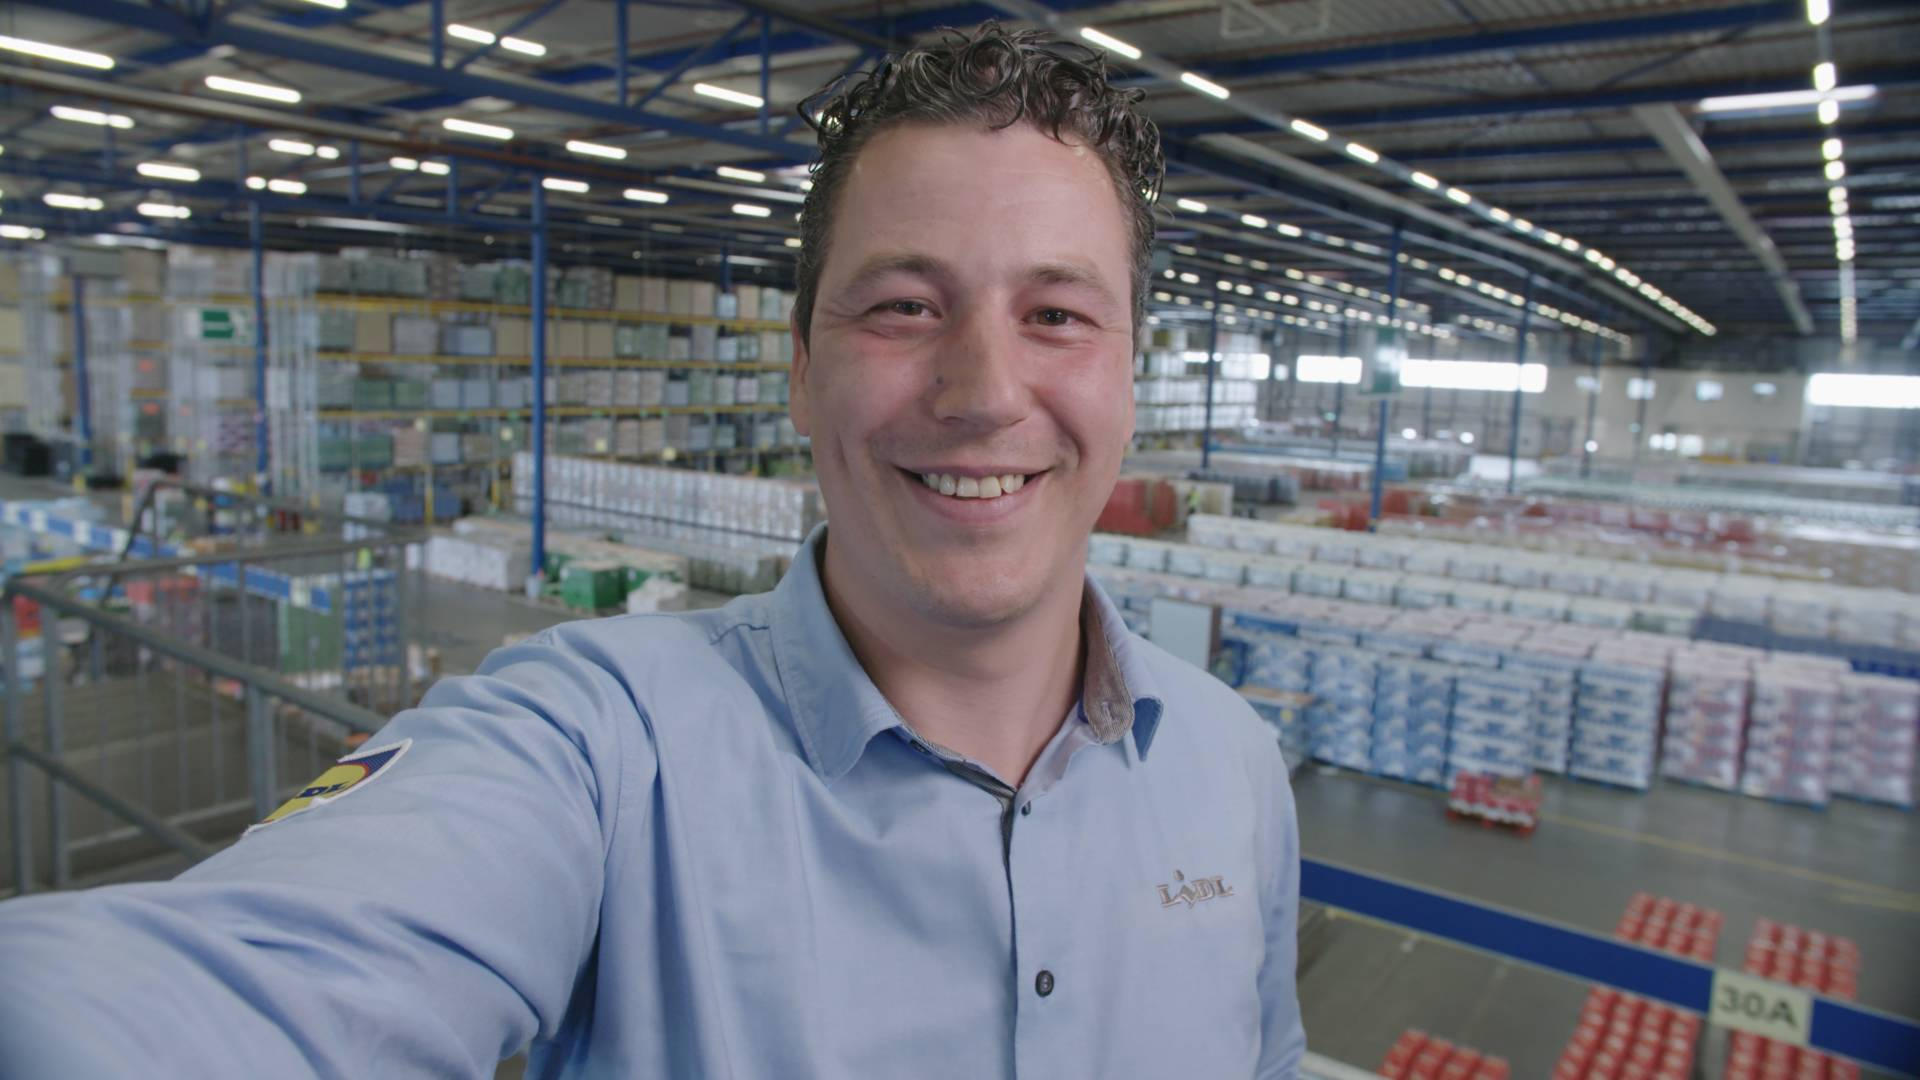 Niek- teammanager in het distributiecentrum